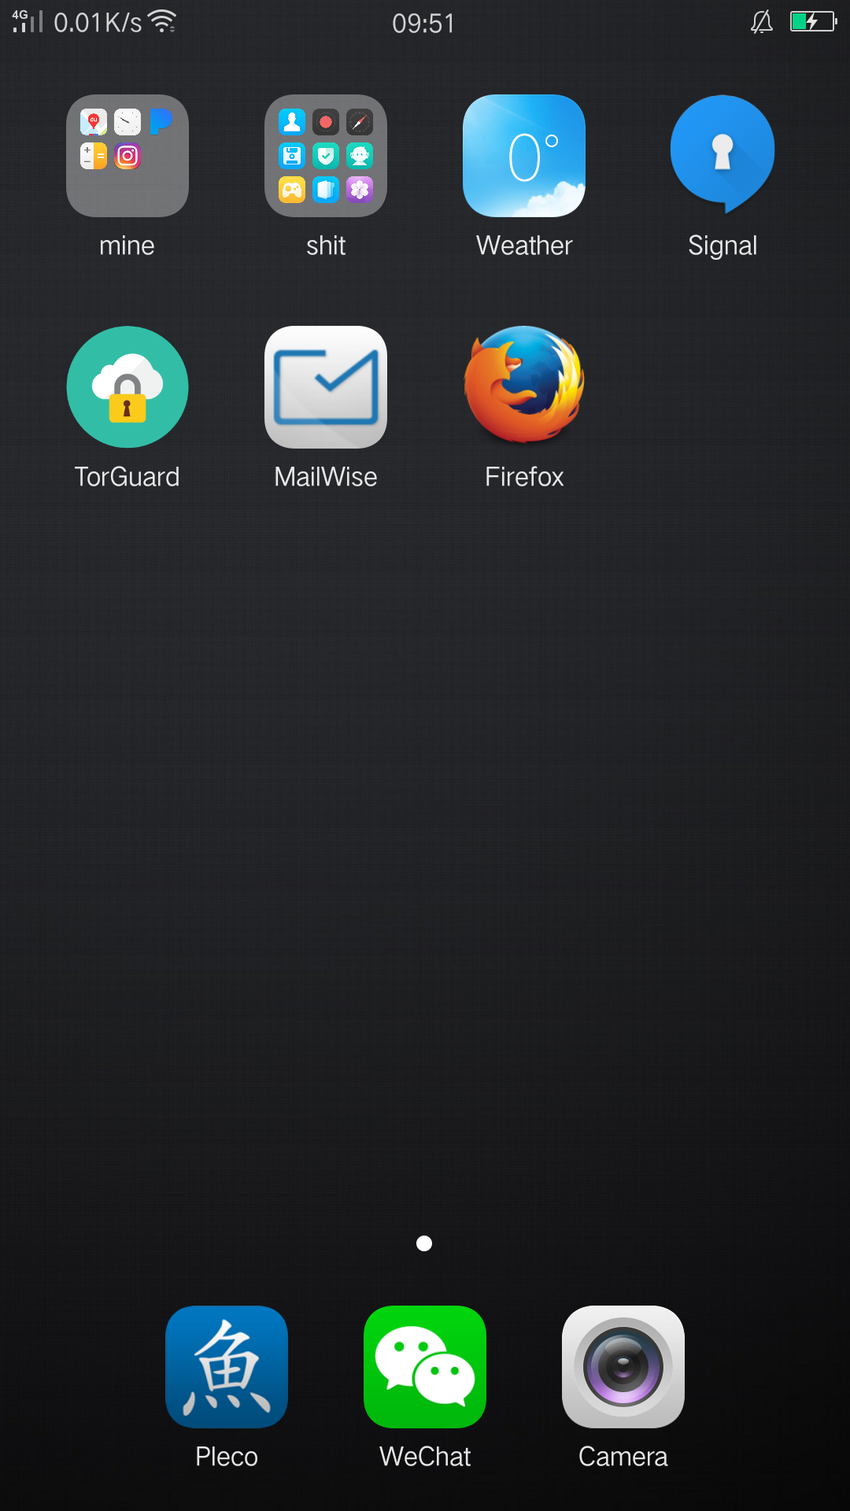 I can't hide apps, but I can put them in a folder, at least.